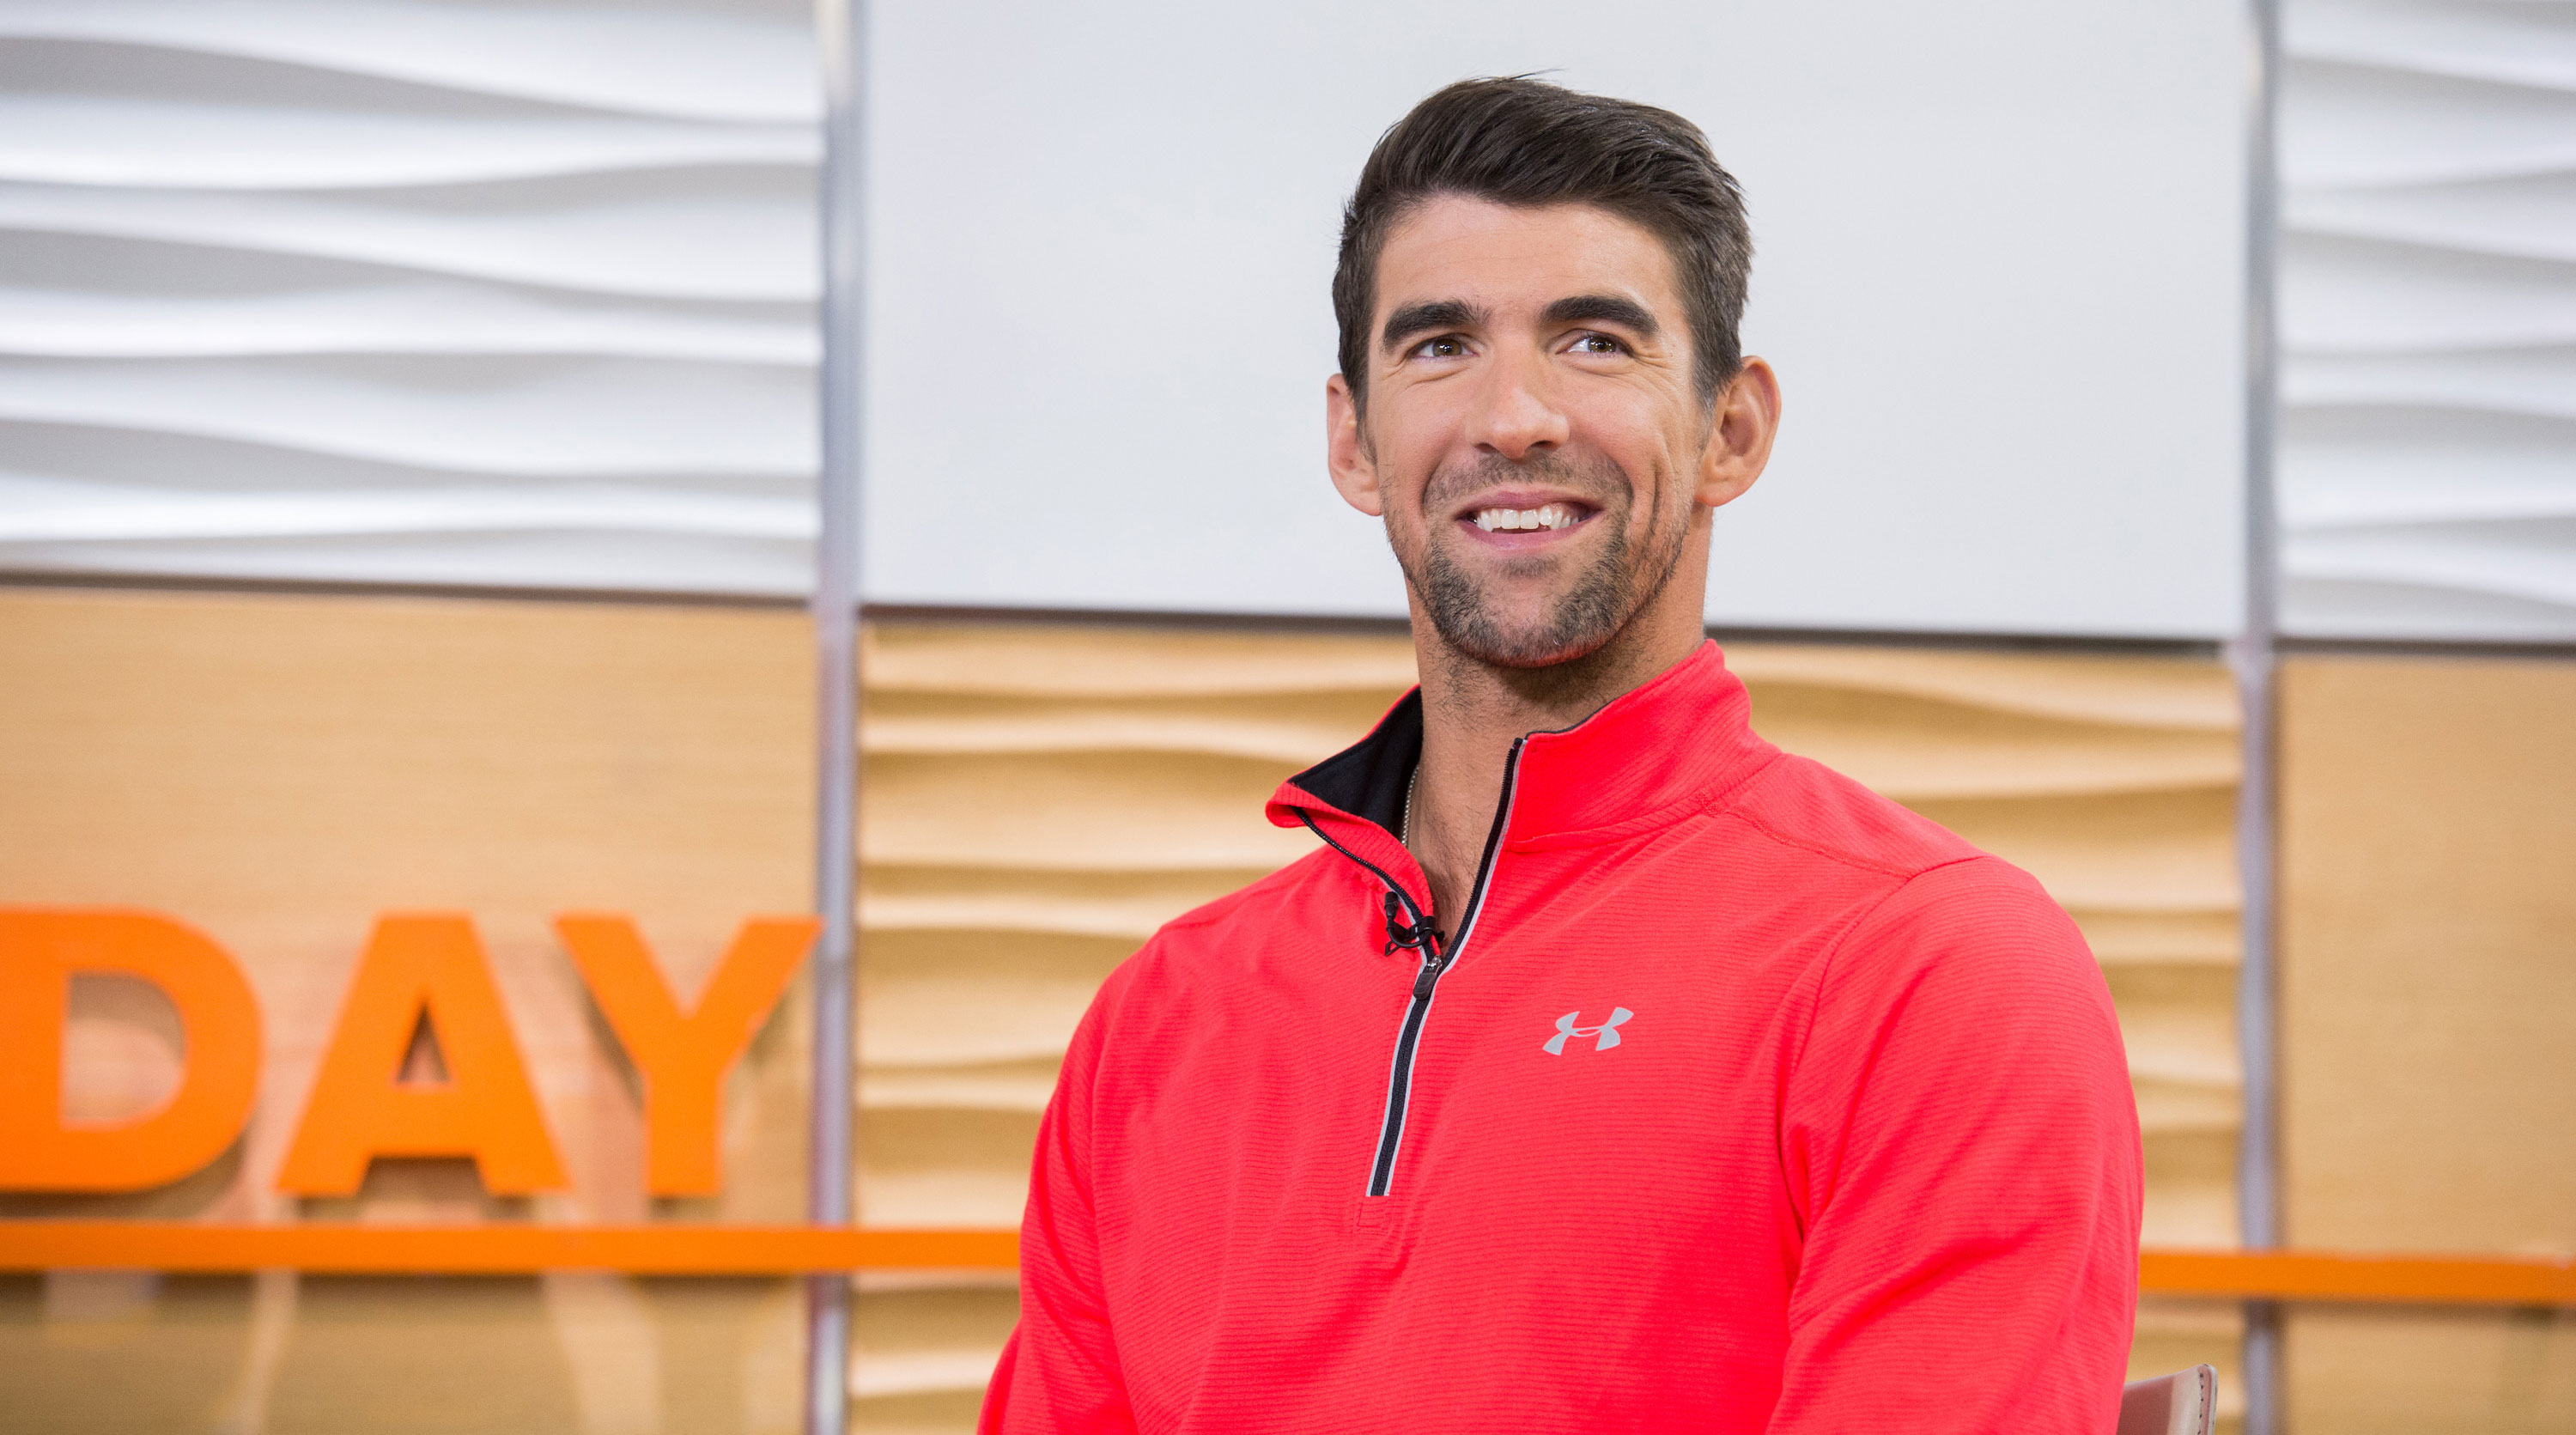 Michael Phelps Opens Up About ADHD Struggles